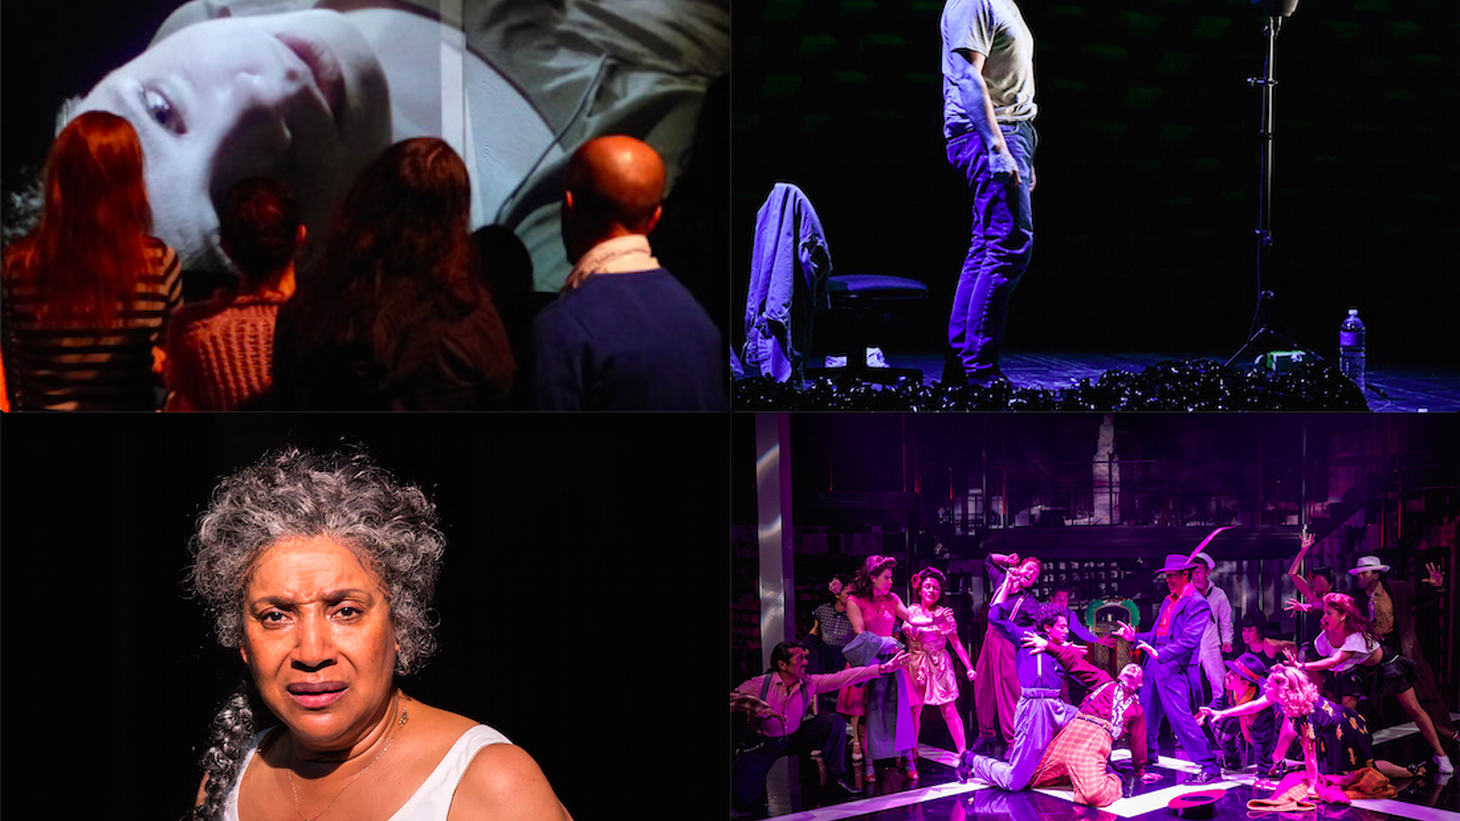 2017 has been a tumultuous year and the best of LA theater has spoken either directly or implicitly to with our political challenges.. Here's my short list for the work on LA's stages that left a lasting impression.